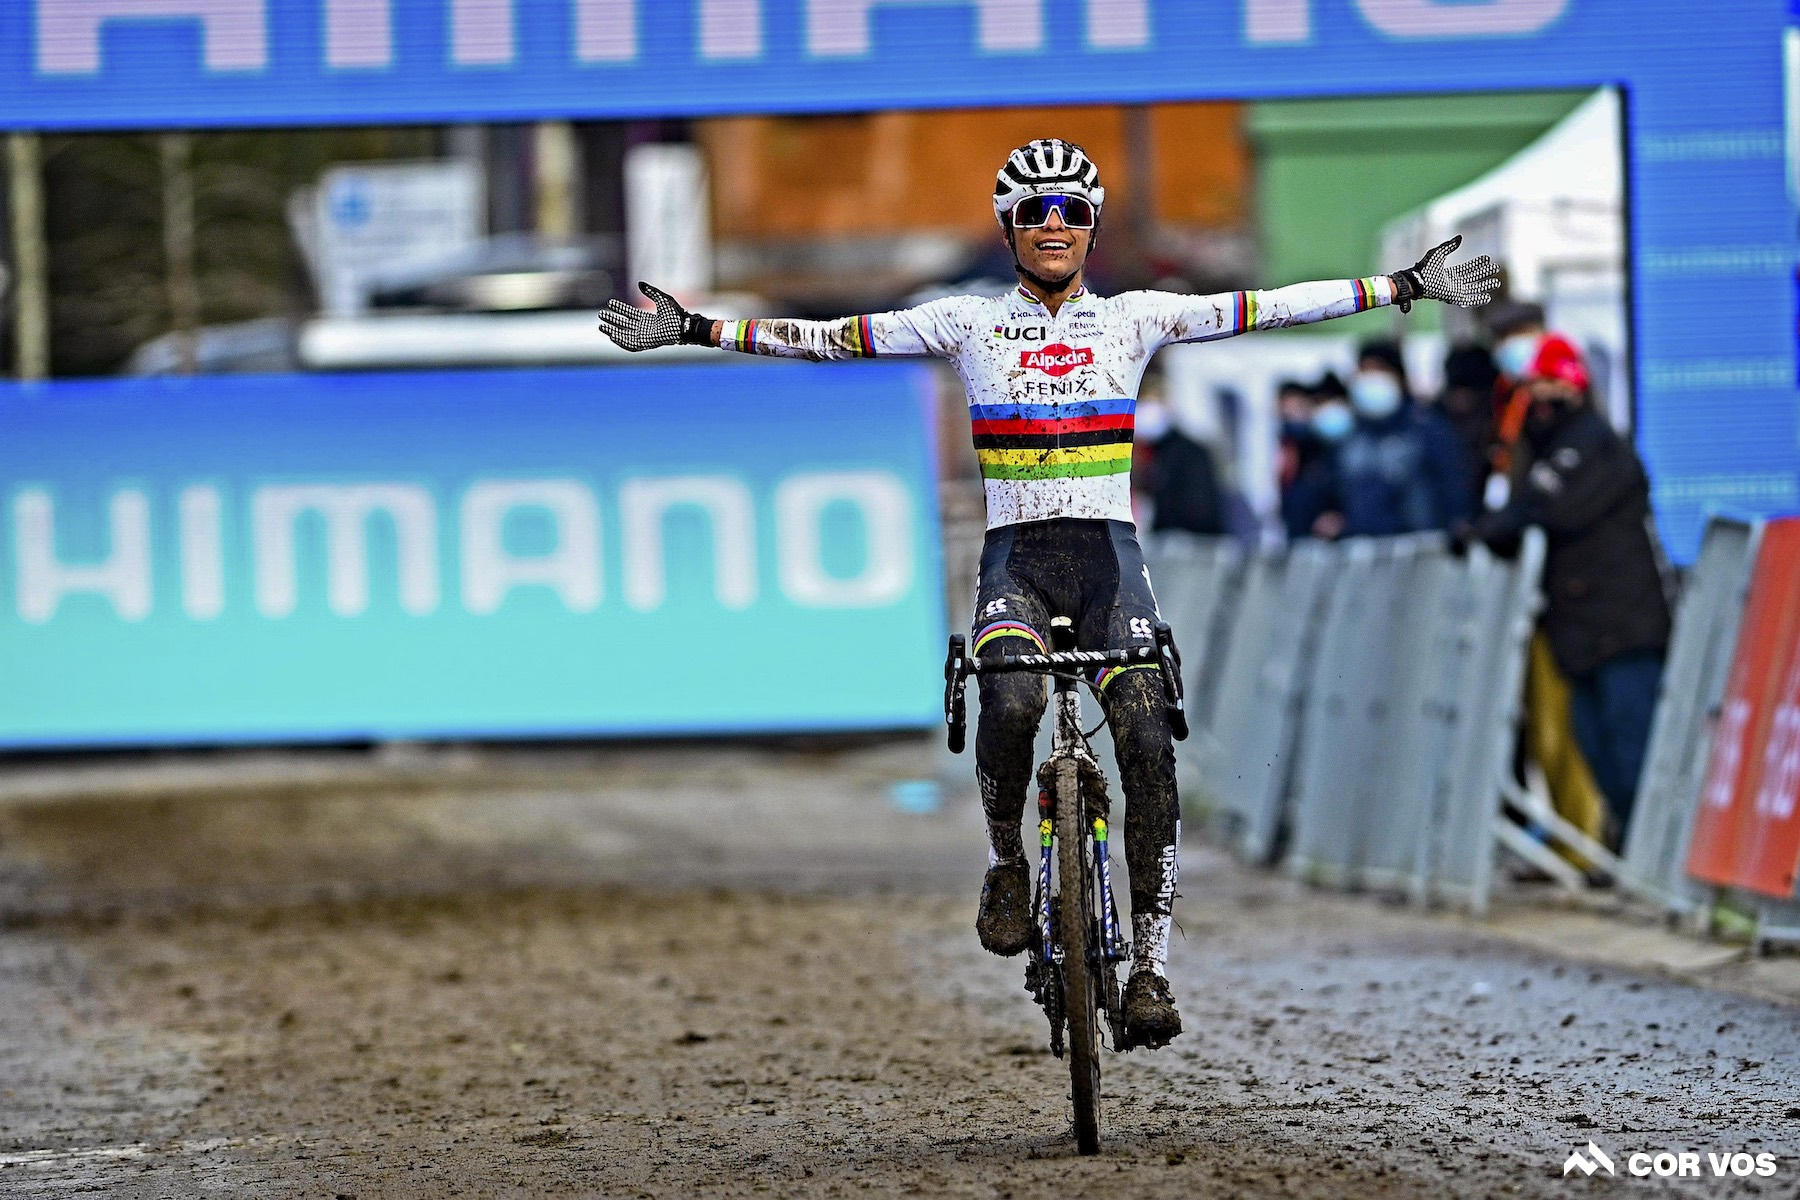 Alvarado and Van Aert take wins in final World Cup round in Overijse: Daily News Digest